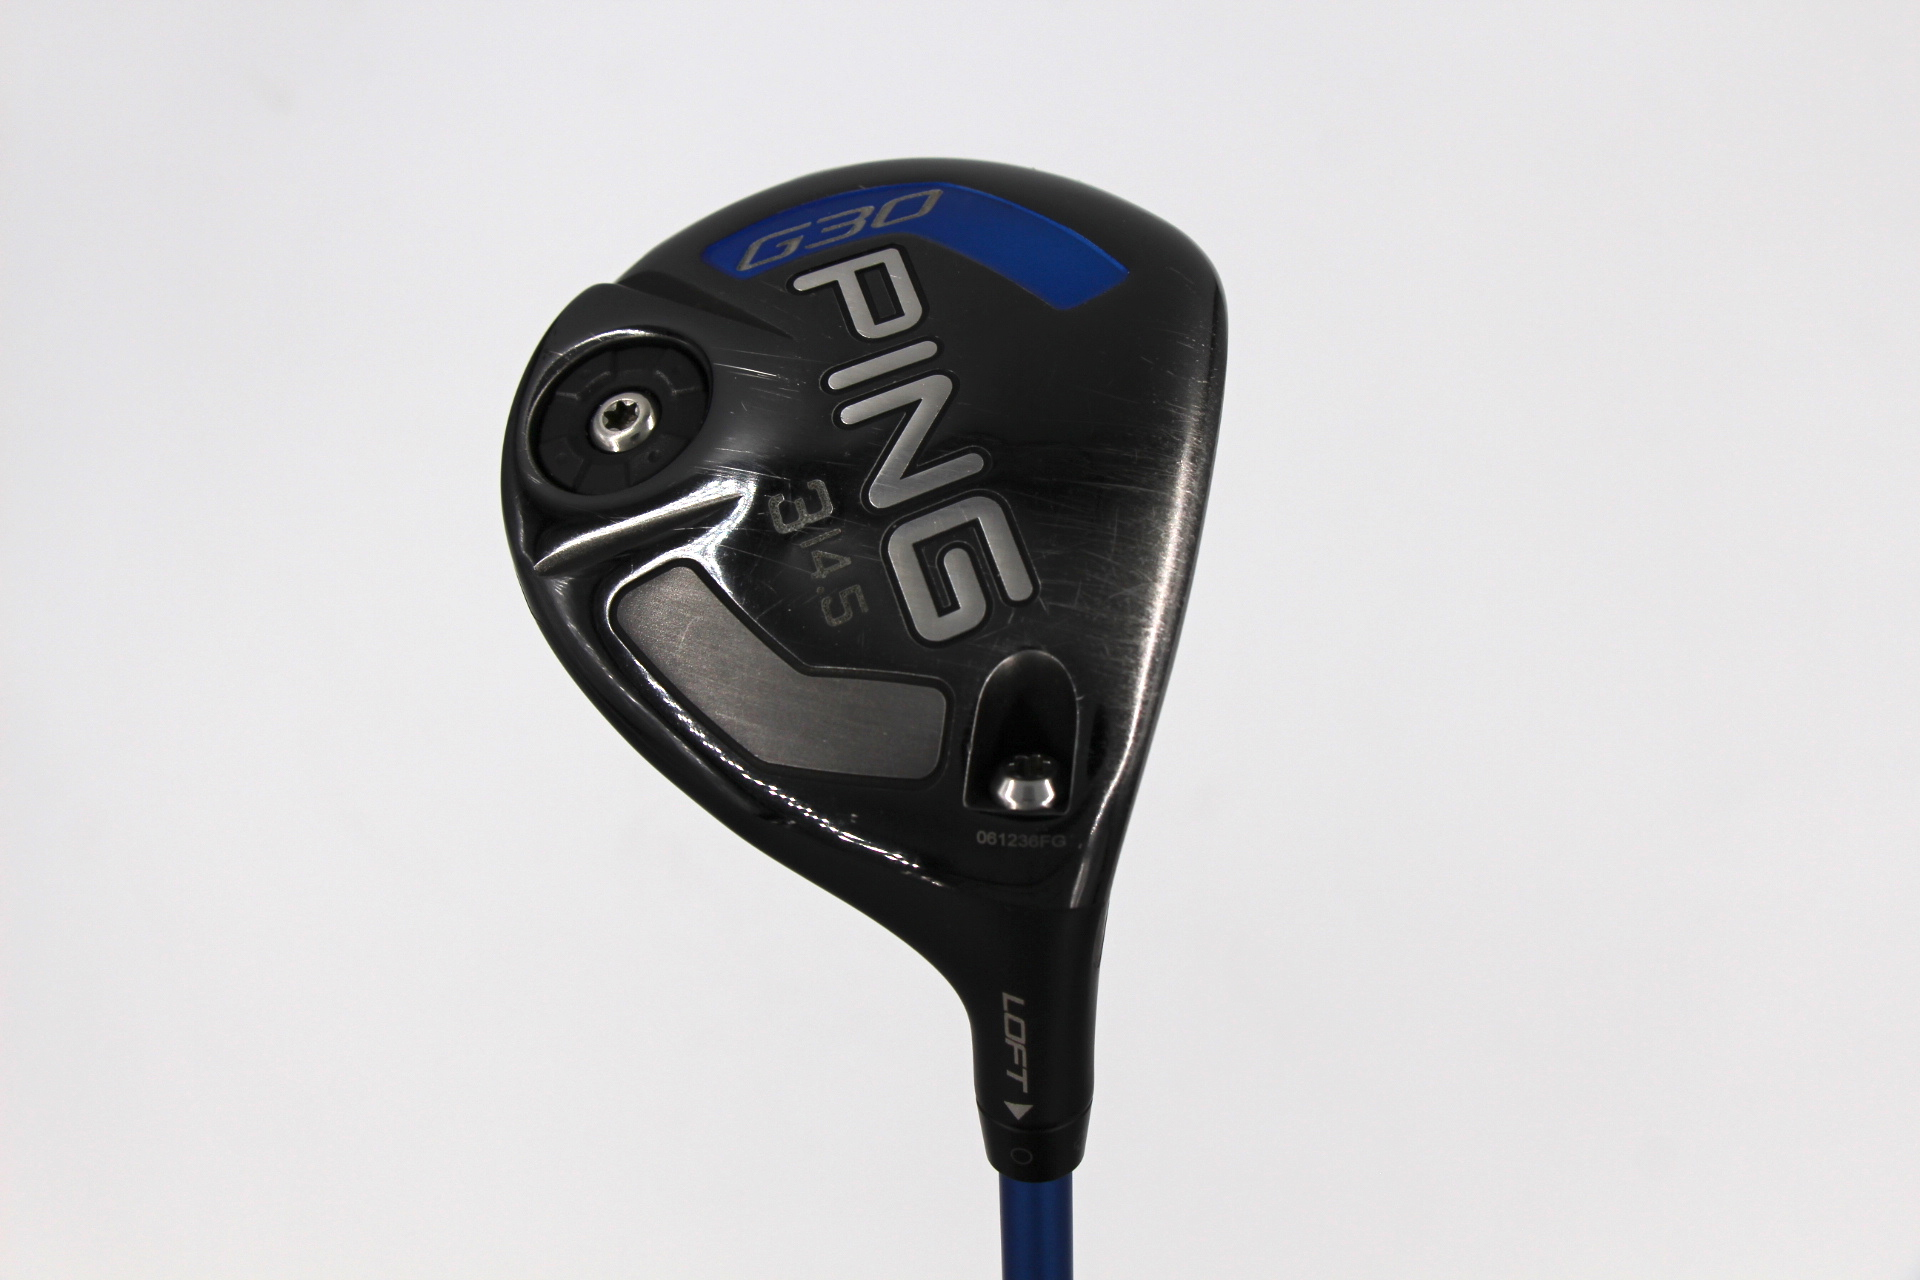 Ping G30 3-Wood Fairway